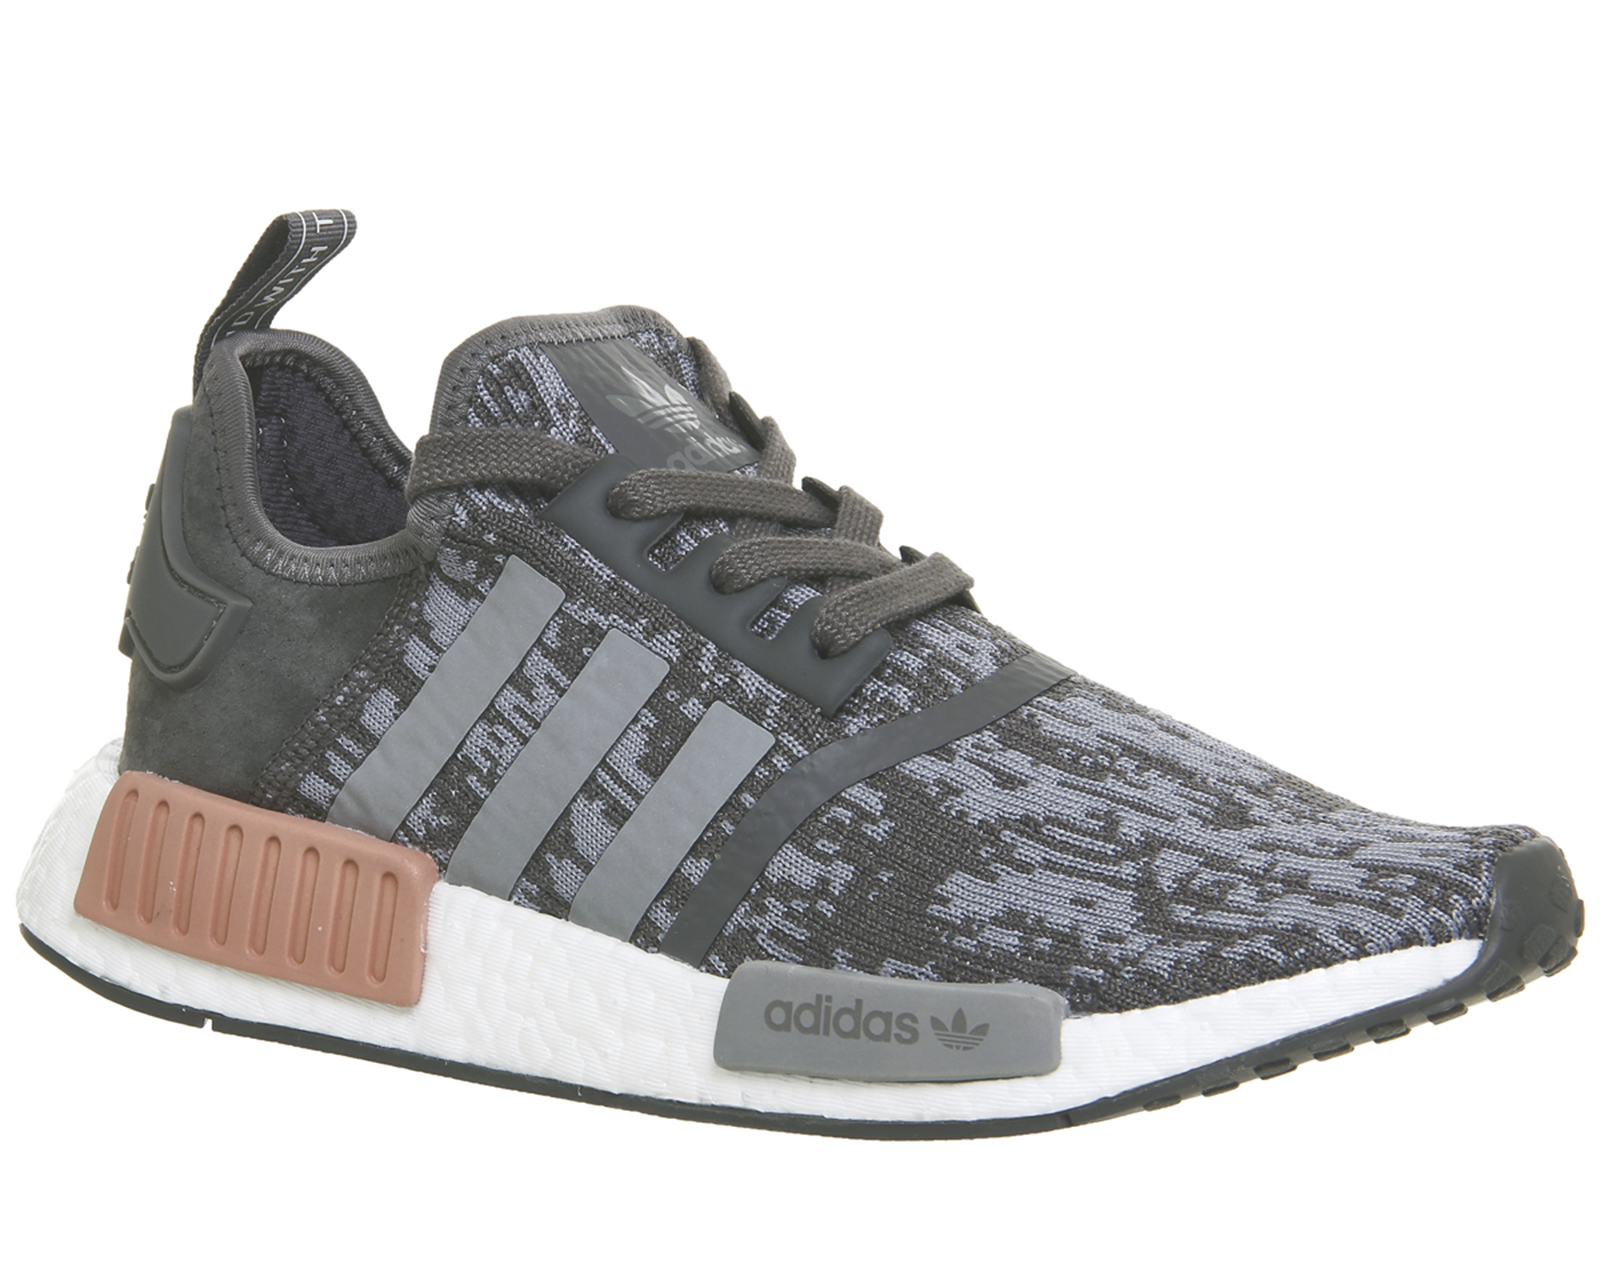 Details about Adidas Nmd R1 GREY FIVE RAW PINK Trainers Shoes